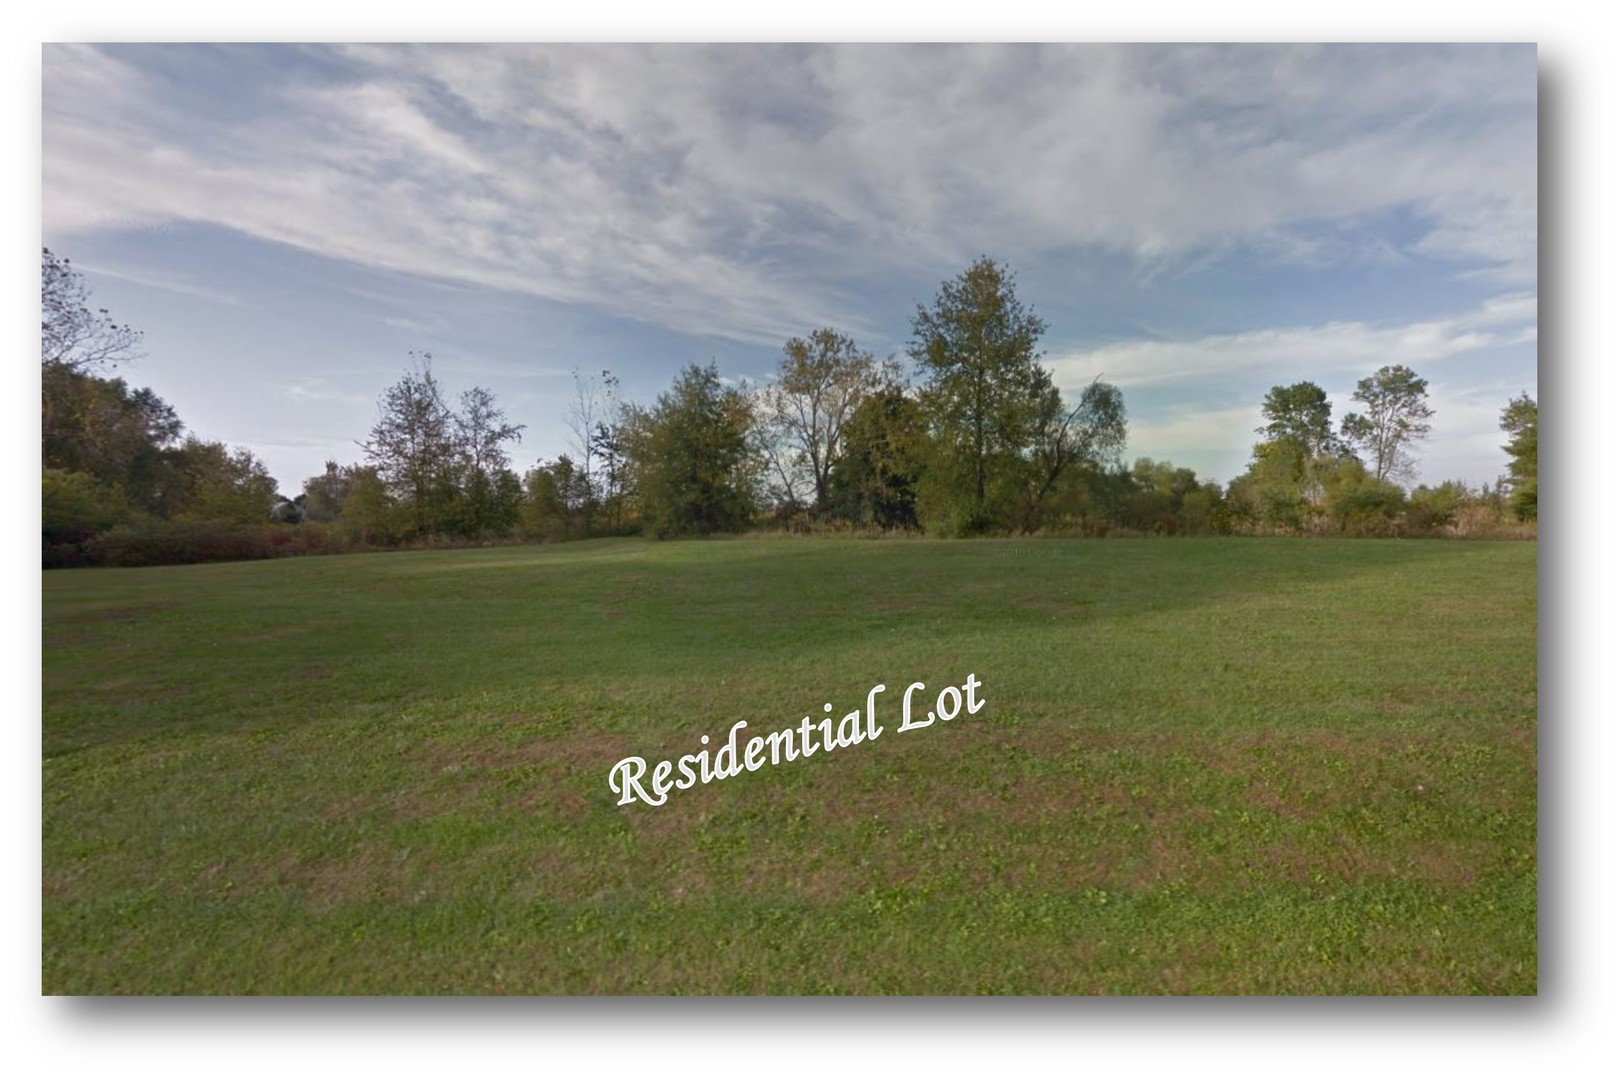 Illinois iroquois county loda - 0 24 Acres In Champaign County